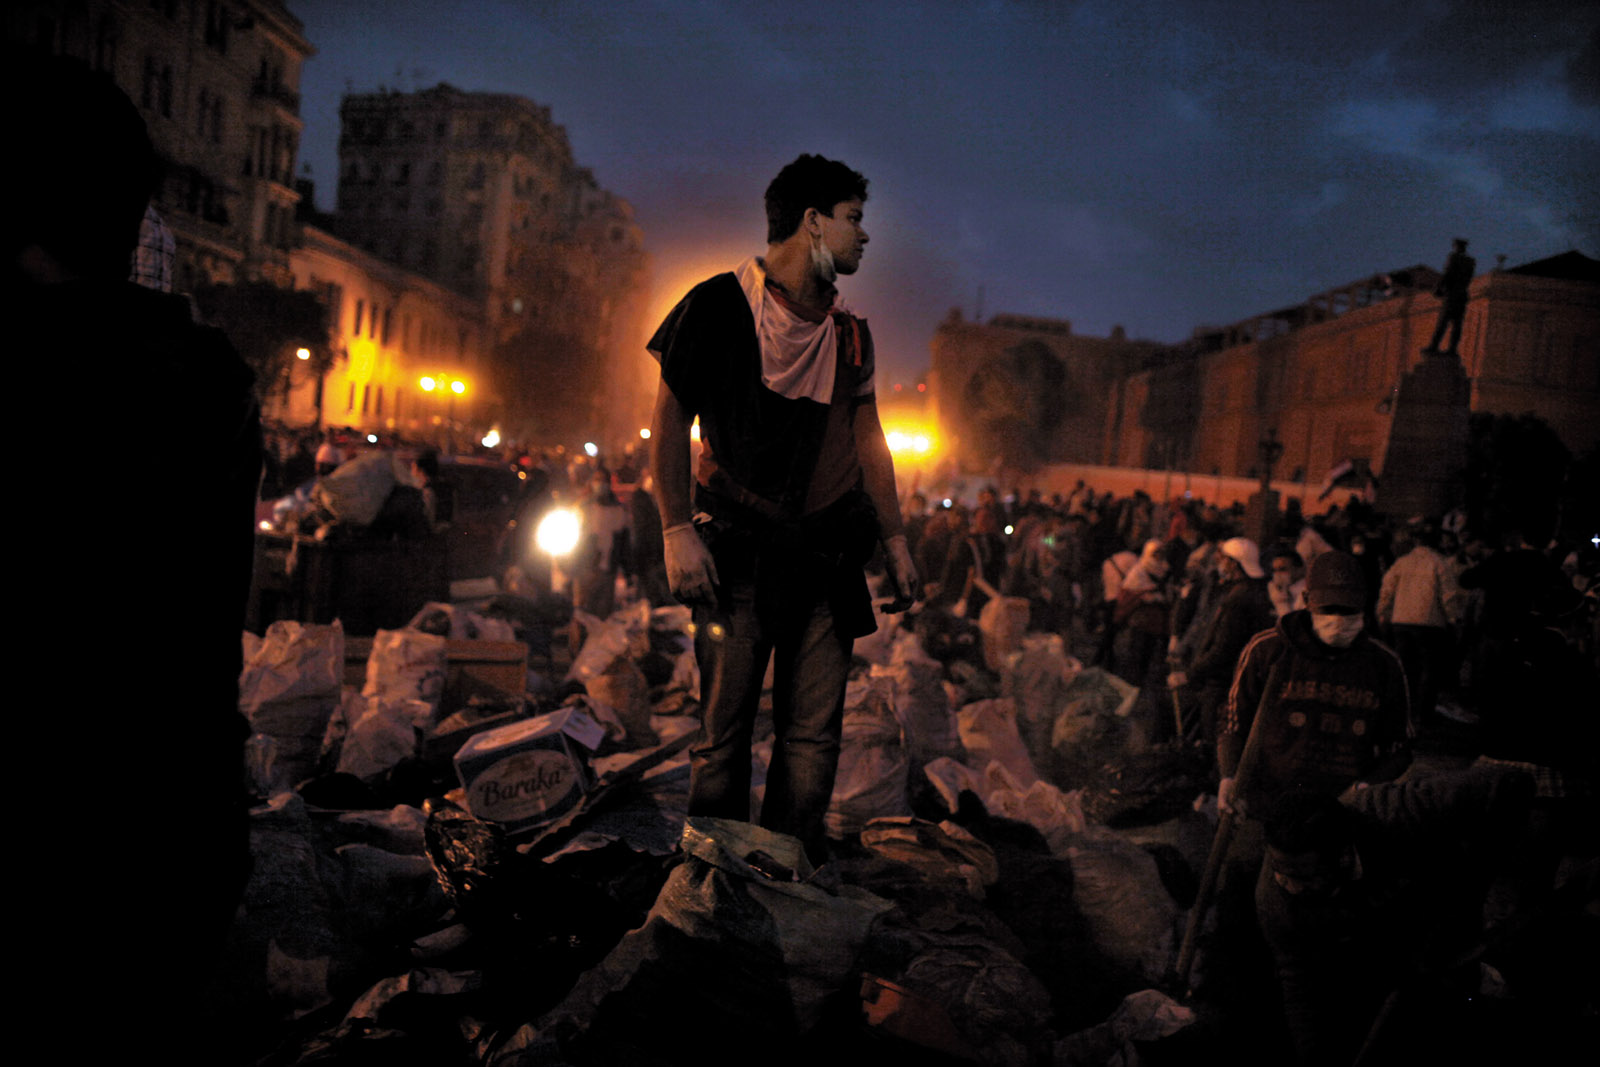 Volunteers clearing trash and debris from Tahrir Square the day after President Hosni Mubarak's resignation, Cairo, February 2011